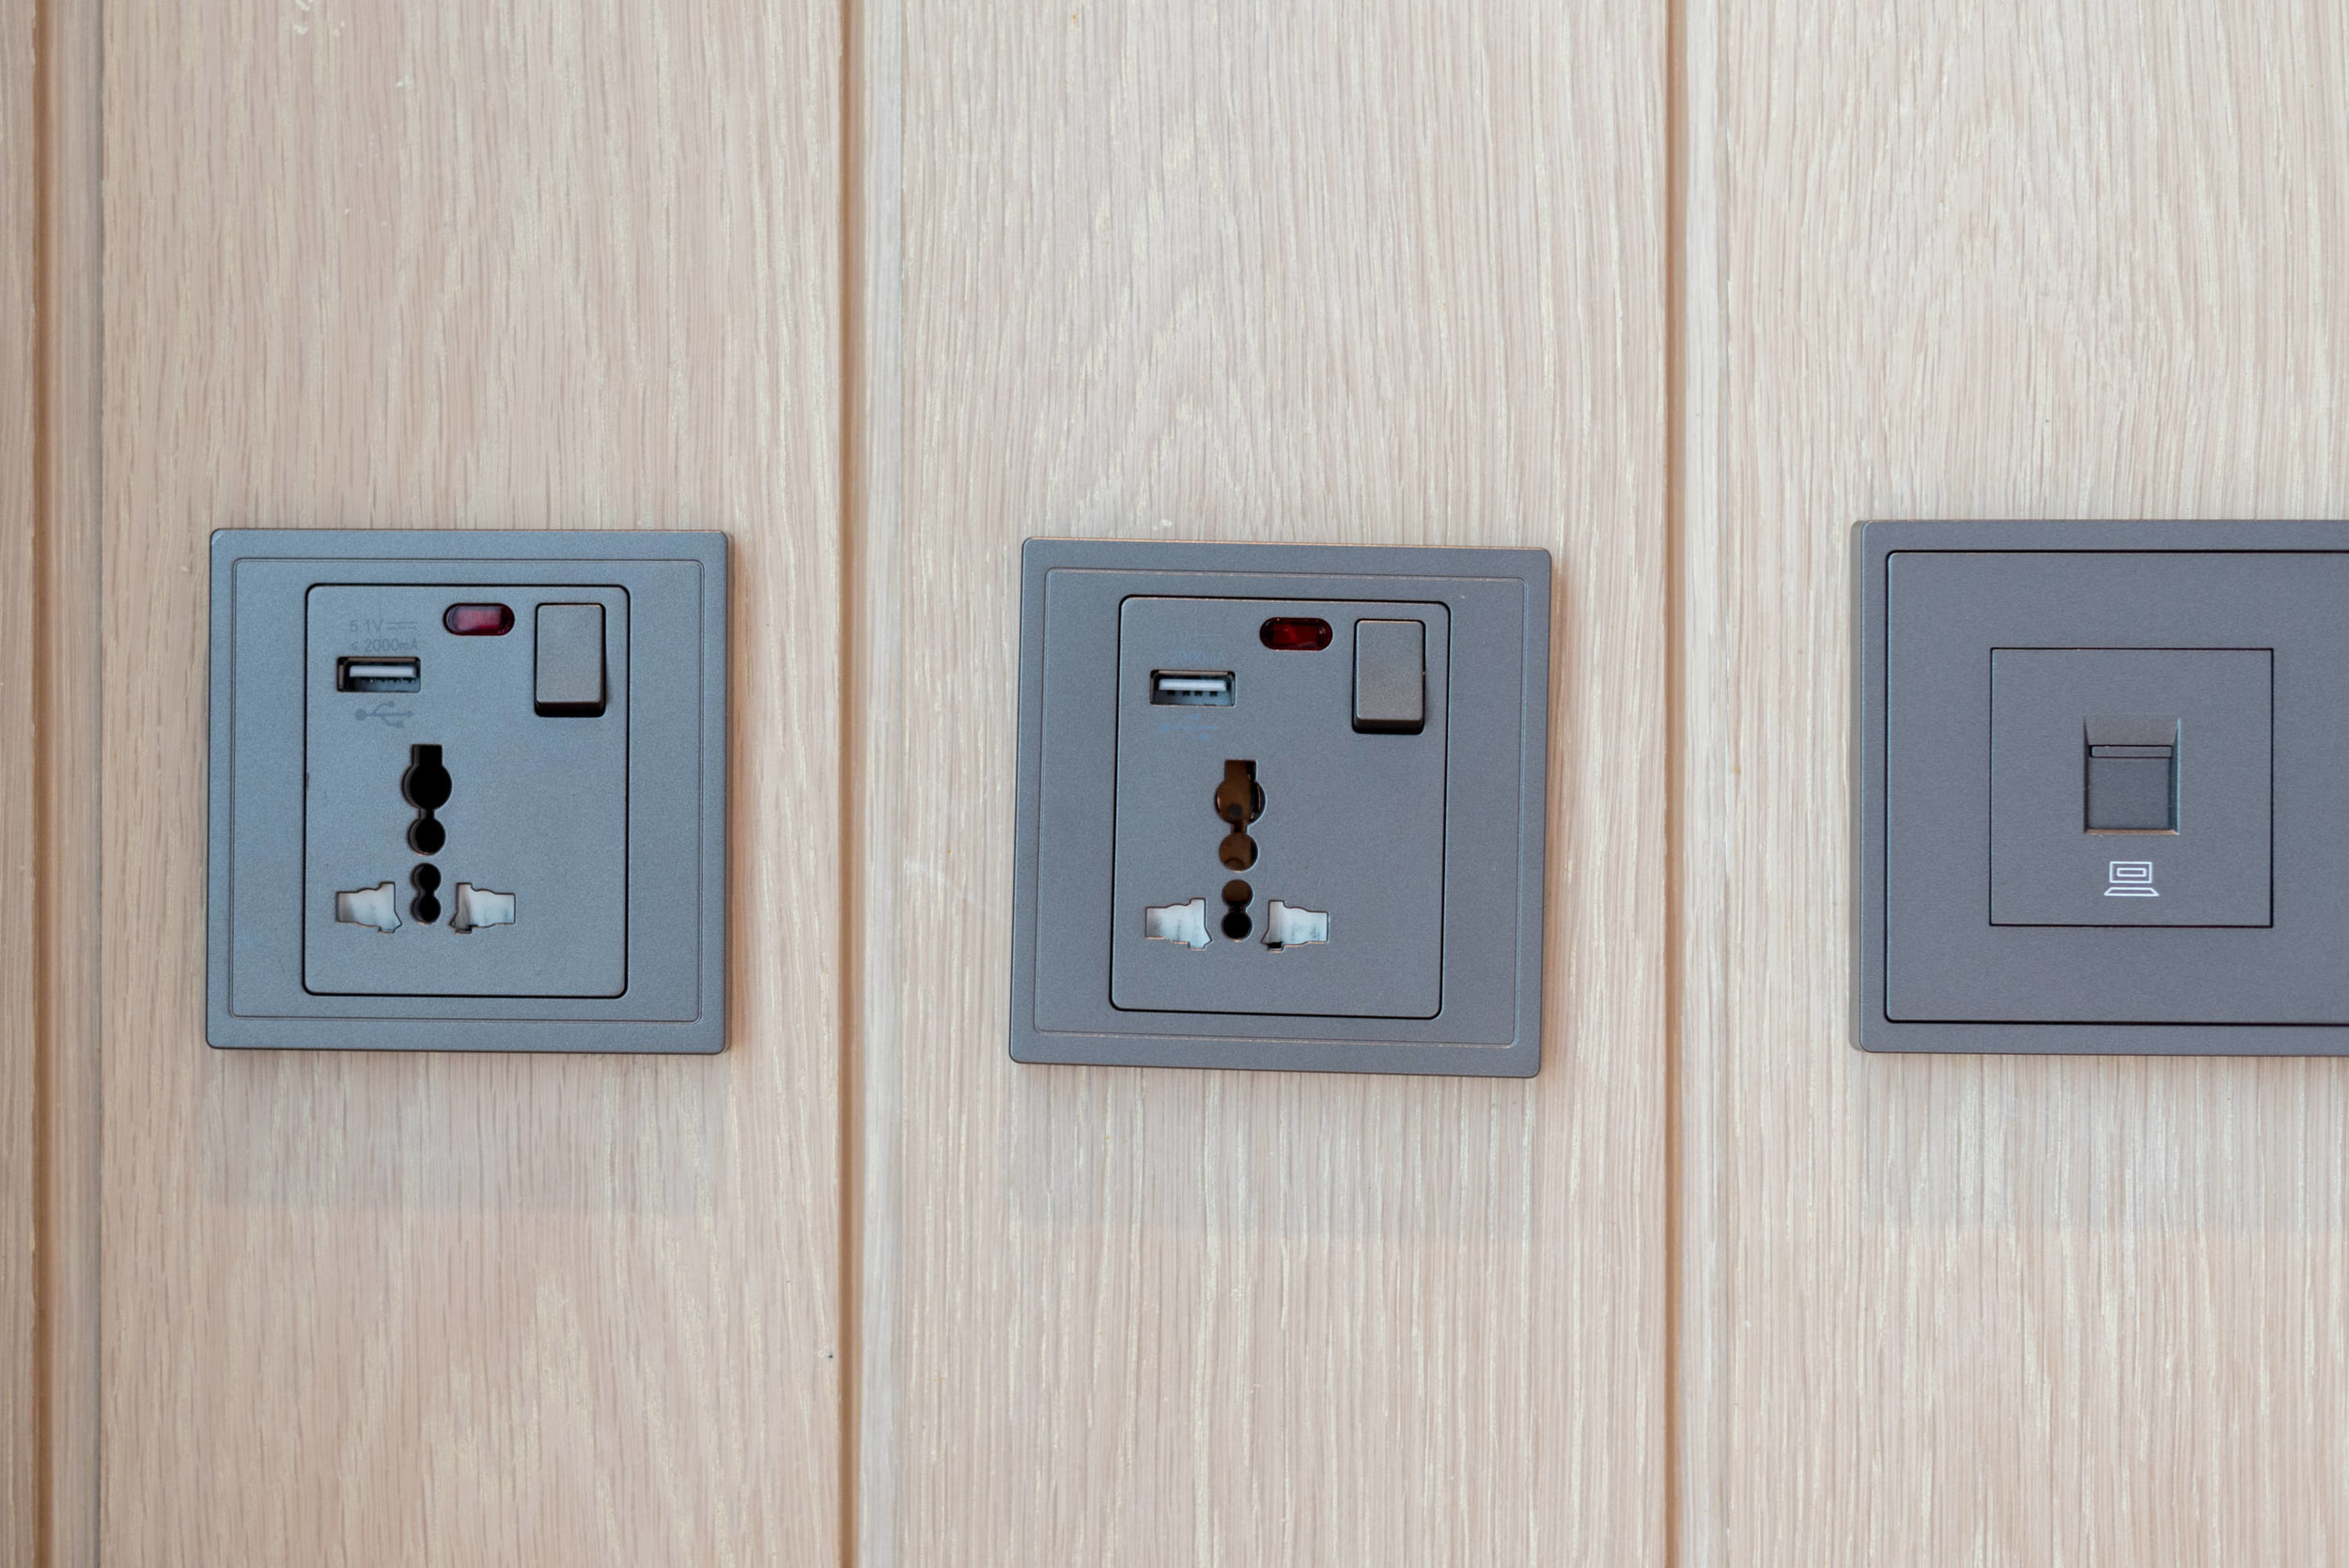 Universal Power Outlets and USB Charging Ports  King Deluxe Room with Balcony - Hilton Garden Inn Singapore Serangoon